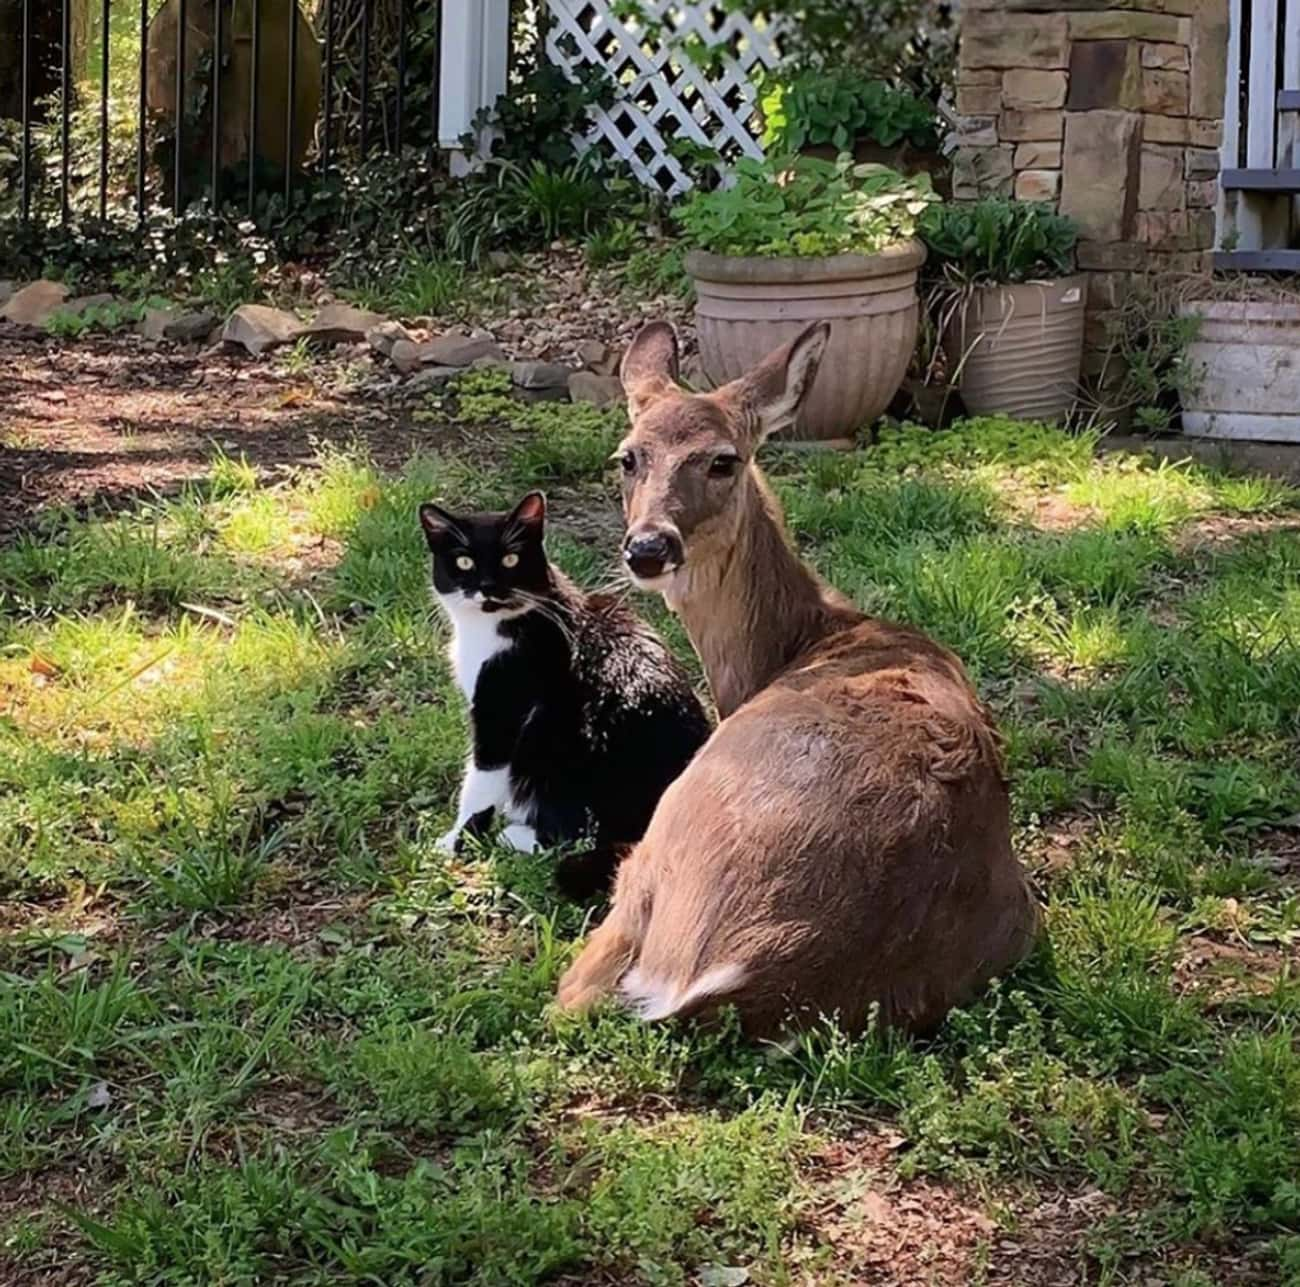 Dottie + O'Malley is listed (or ranked) 2 on the list 25 Animal Best Friends Because We Need Some Positivity Right Now